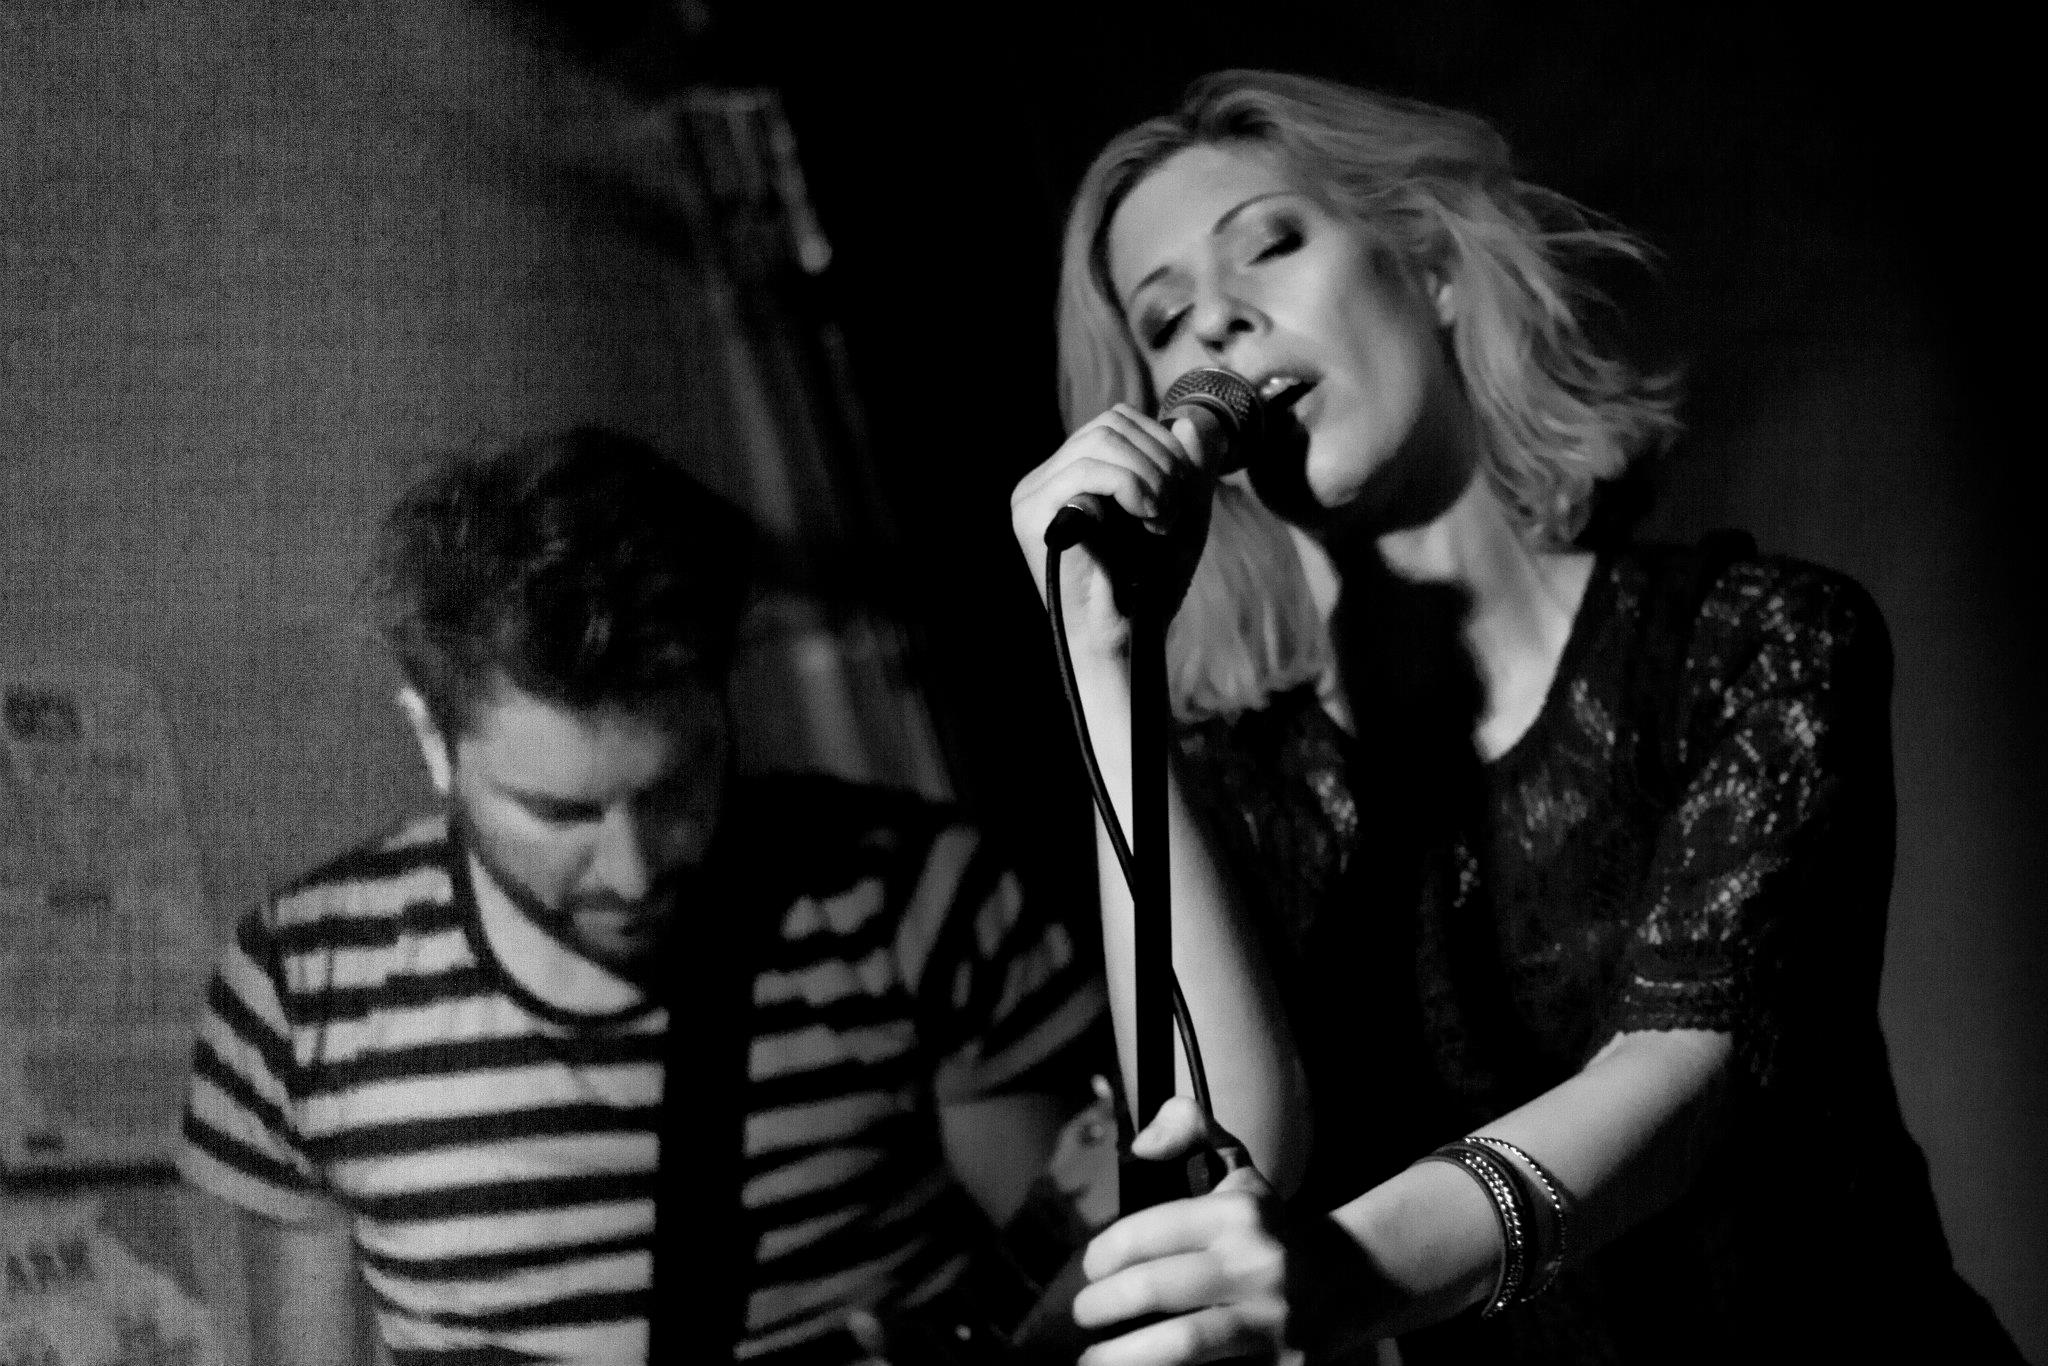 AVAKHAN Lead singer Ava Eckermann and guitarist Andreas Wennberg at Powers Bar in London